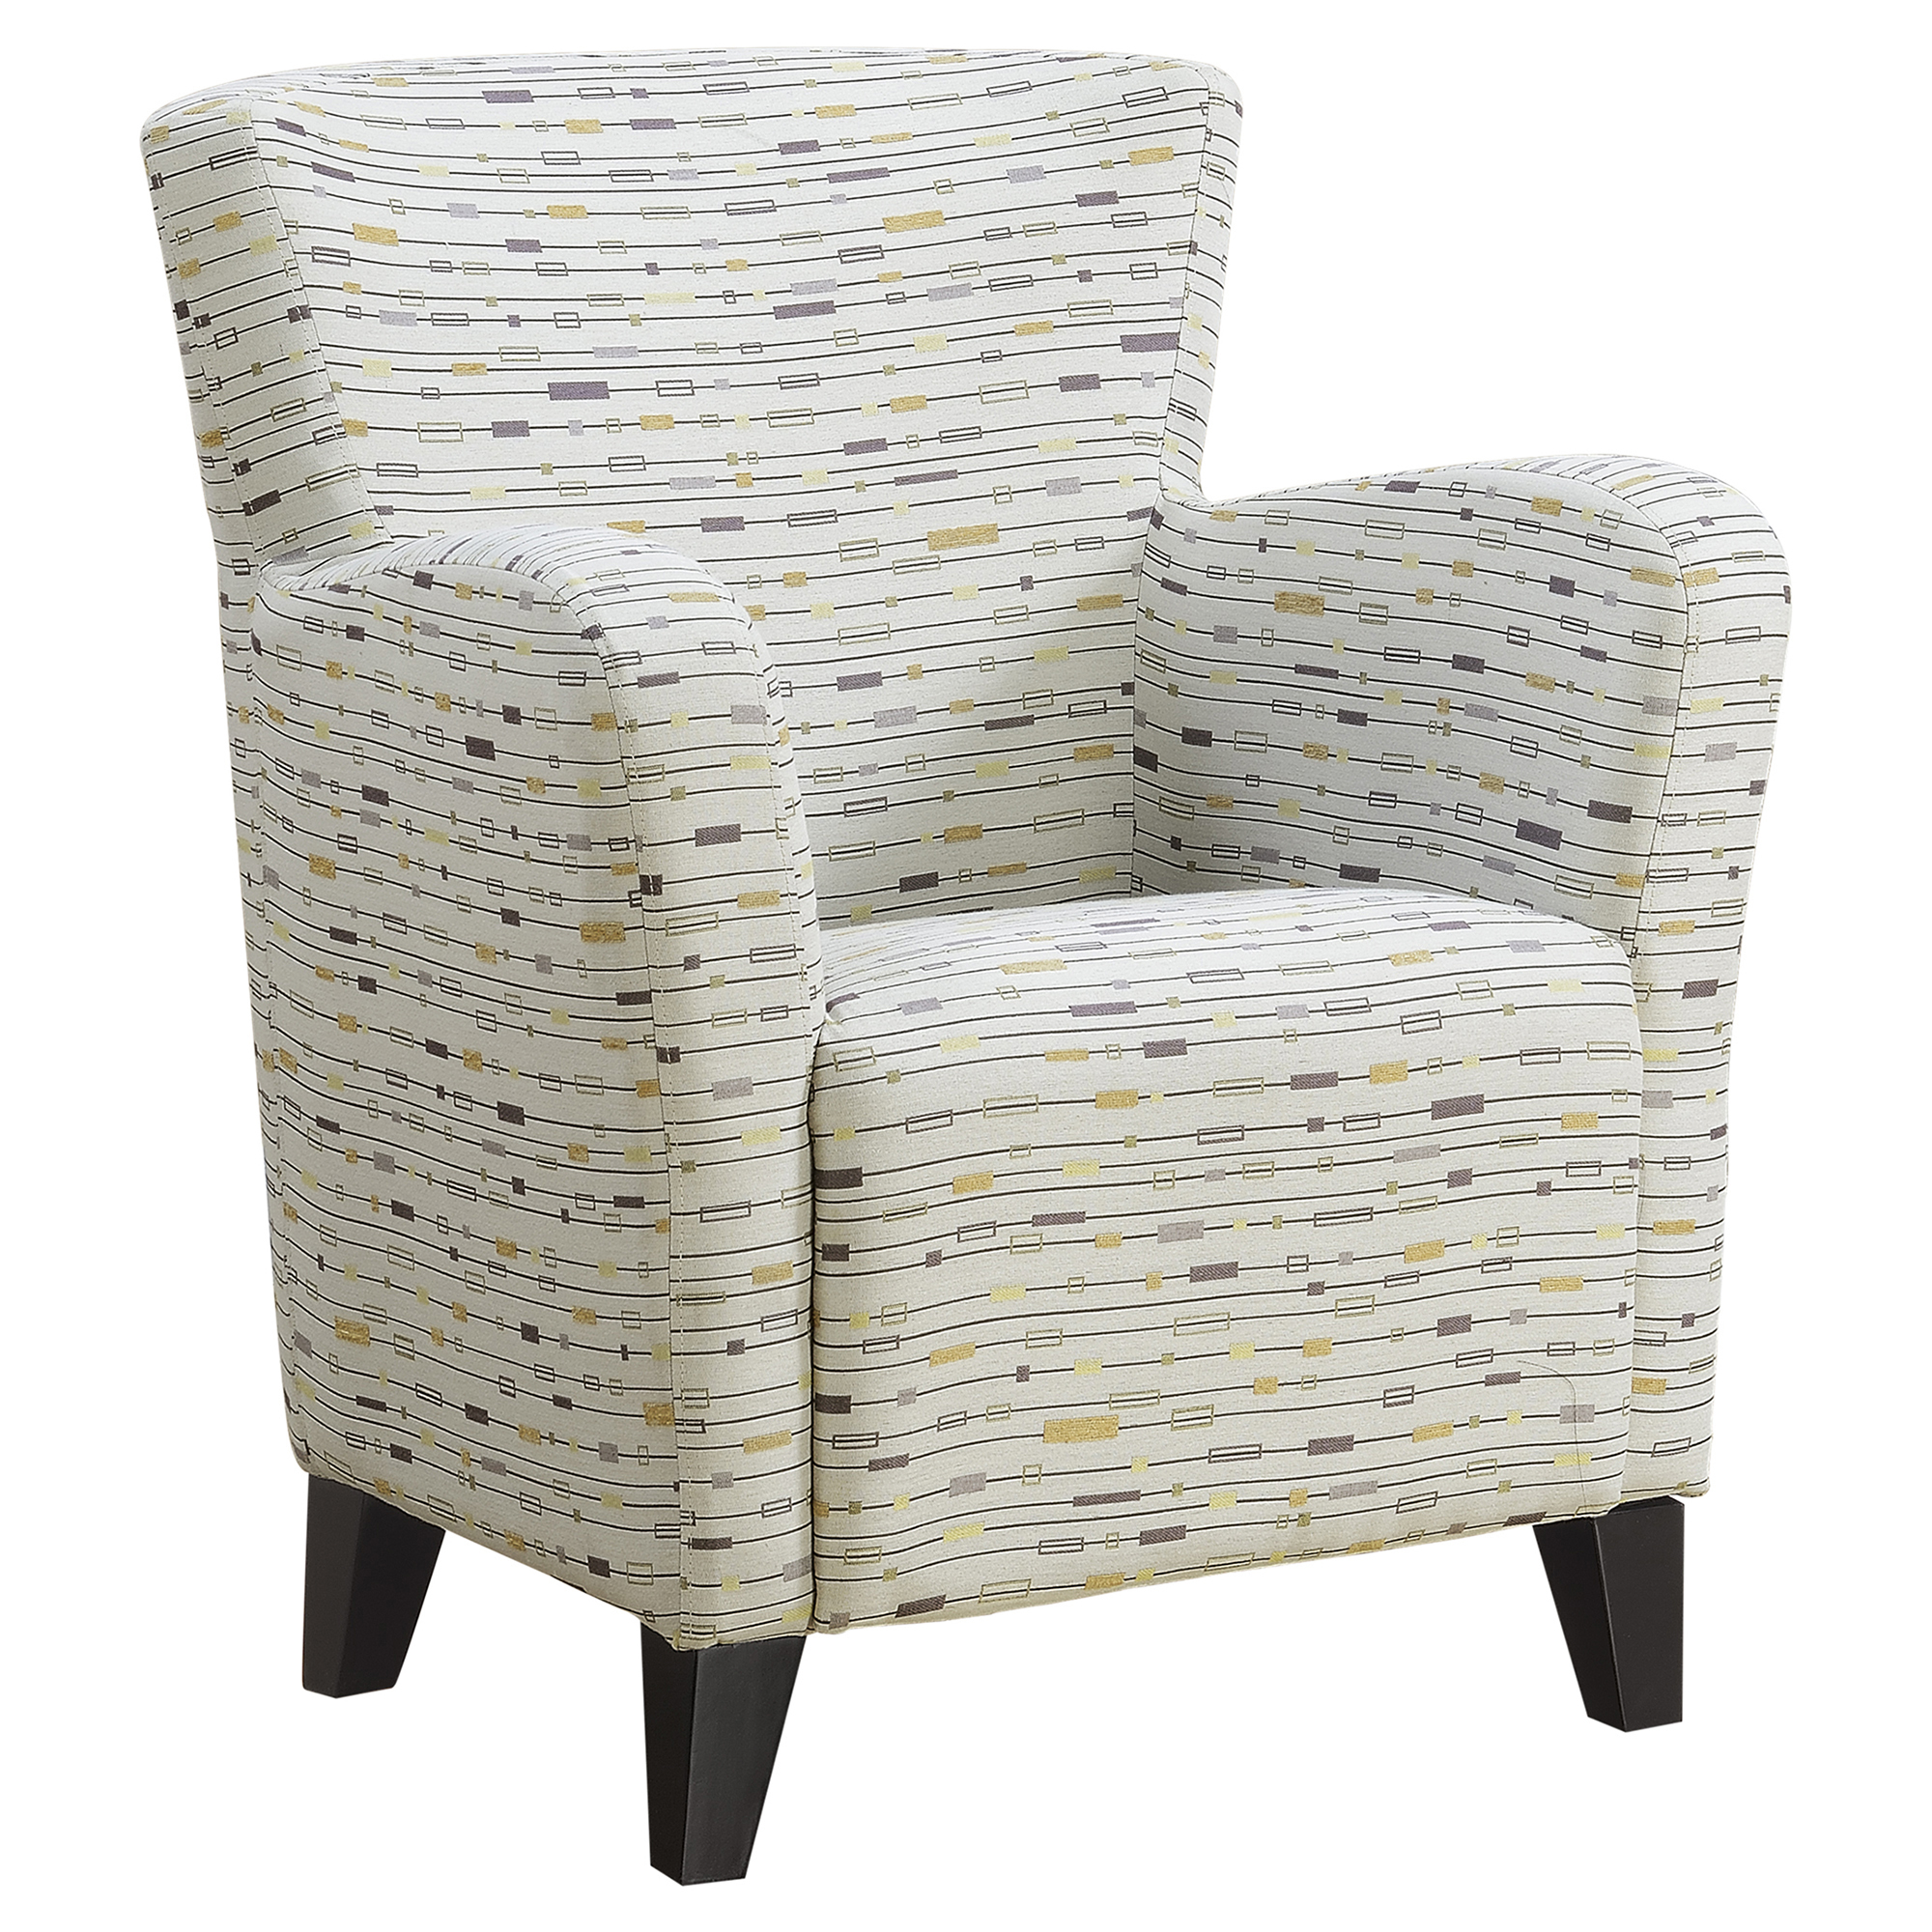 ACCENT CHAIR - EARTH TONE GRAPHIC PATTERN FABRIC